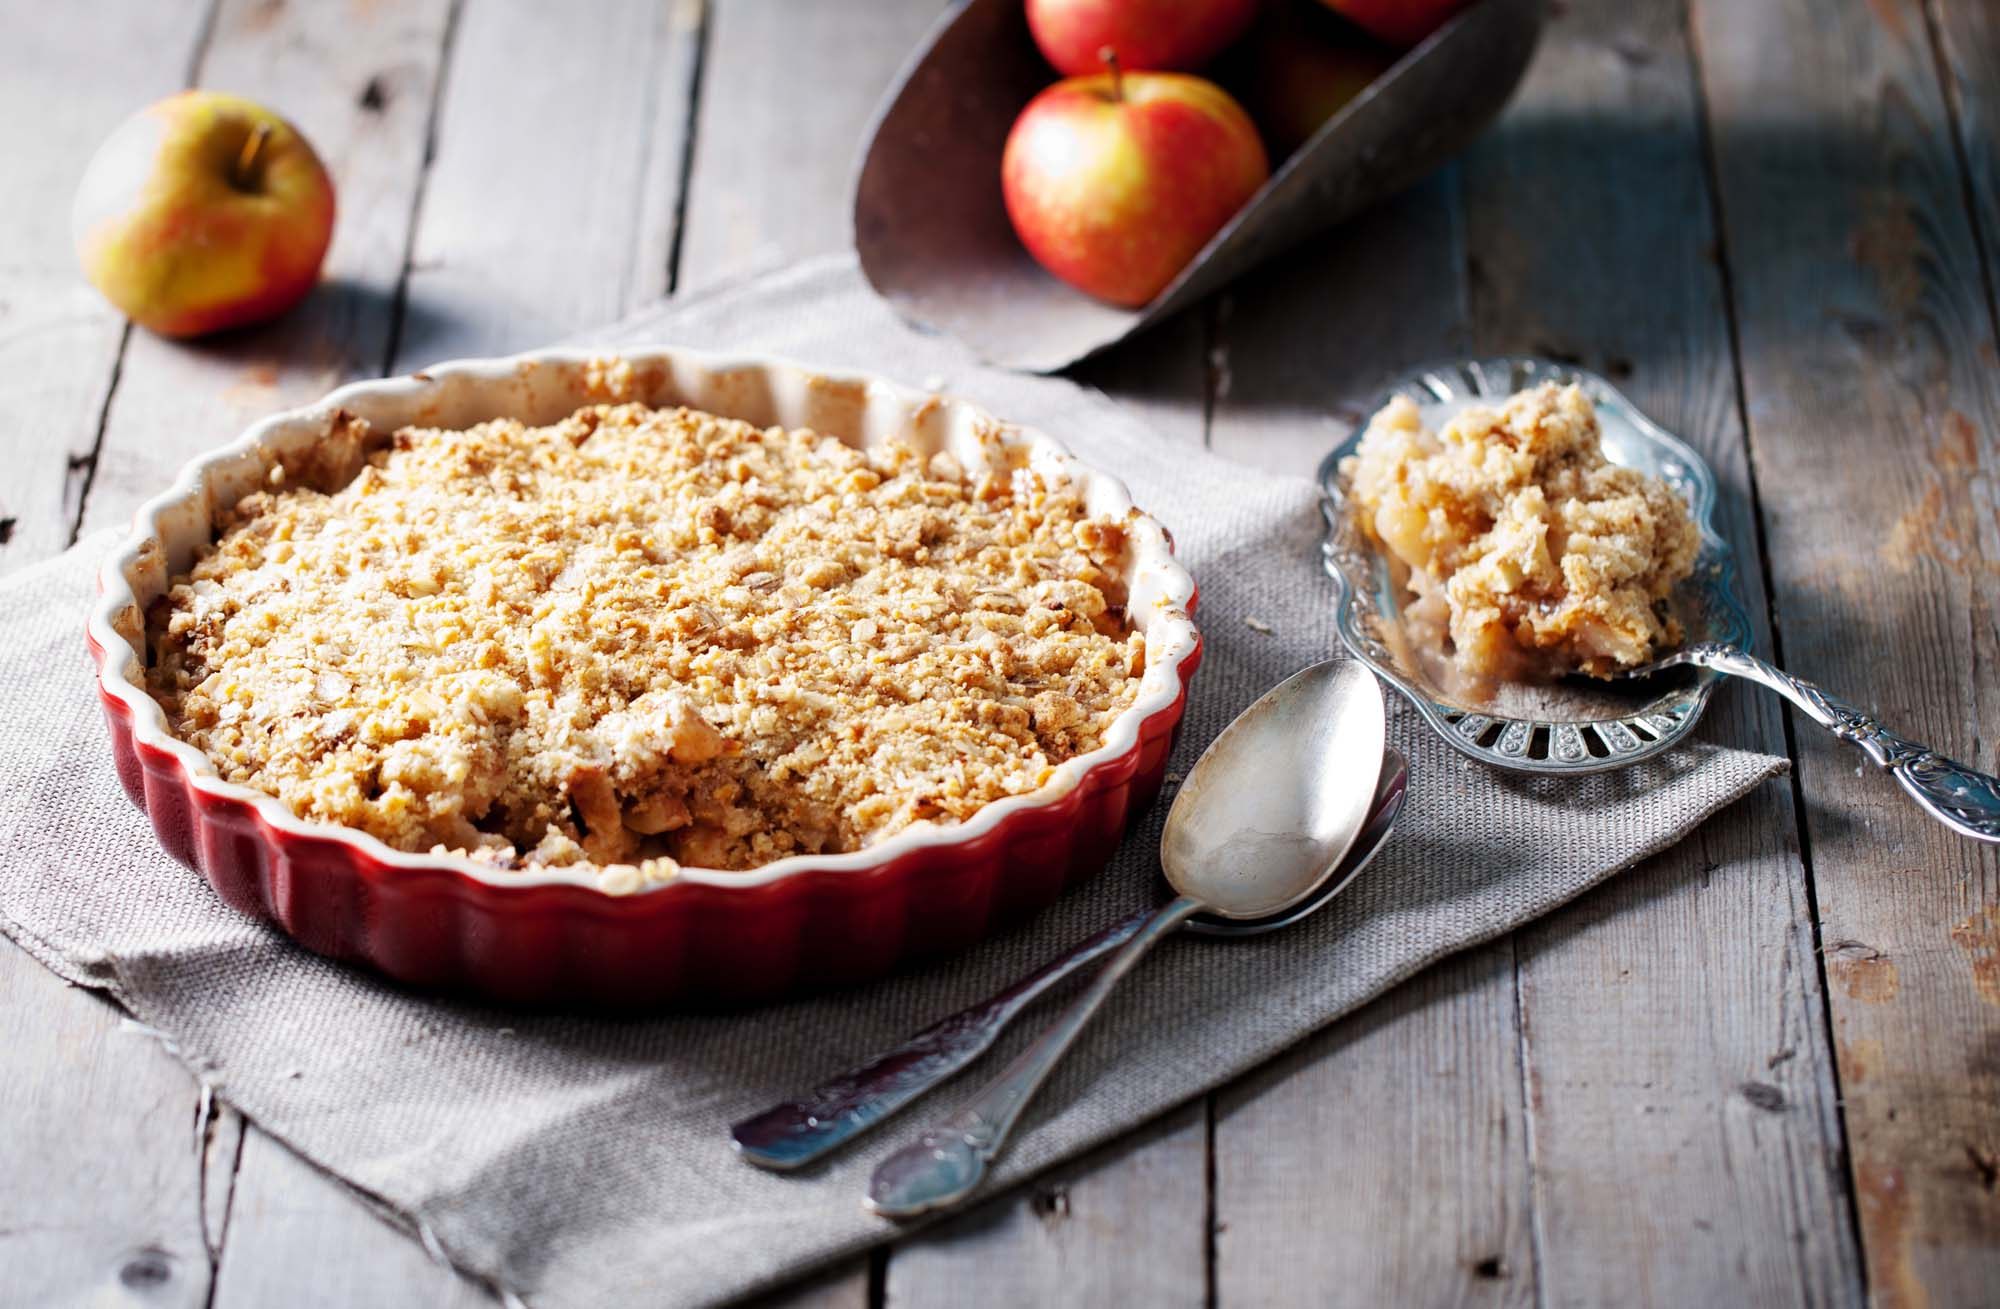 Apple crumble med rørsukker